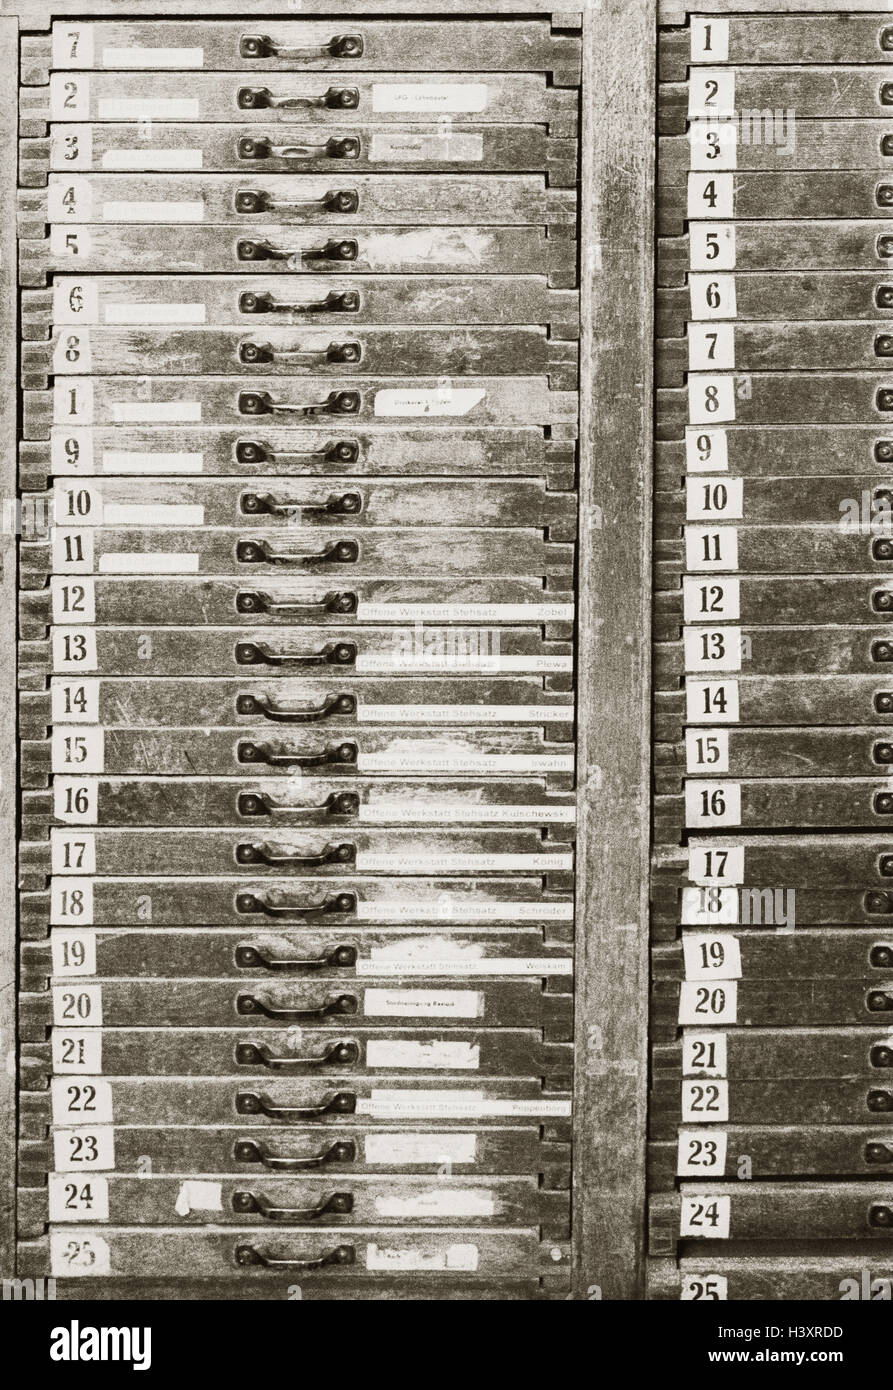 Printing work, letter cases, numbering, b/w, sepia, Stock Photo